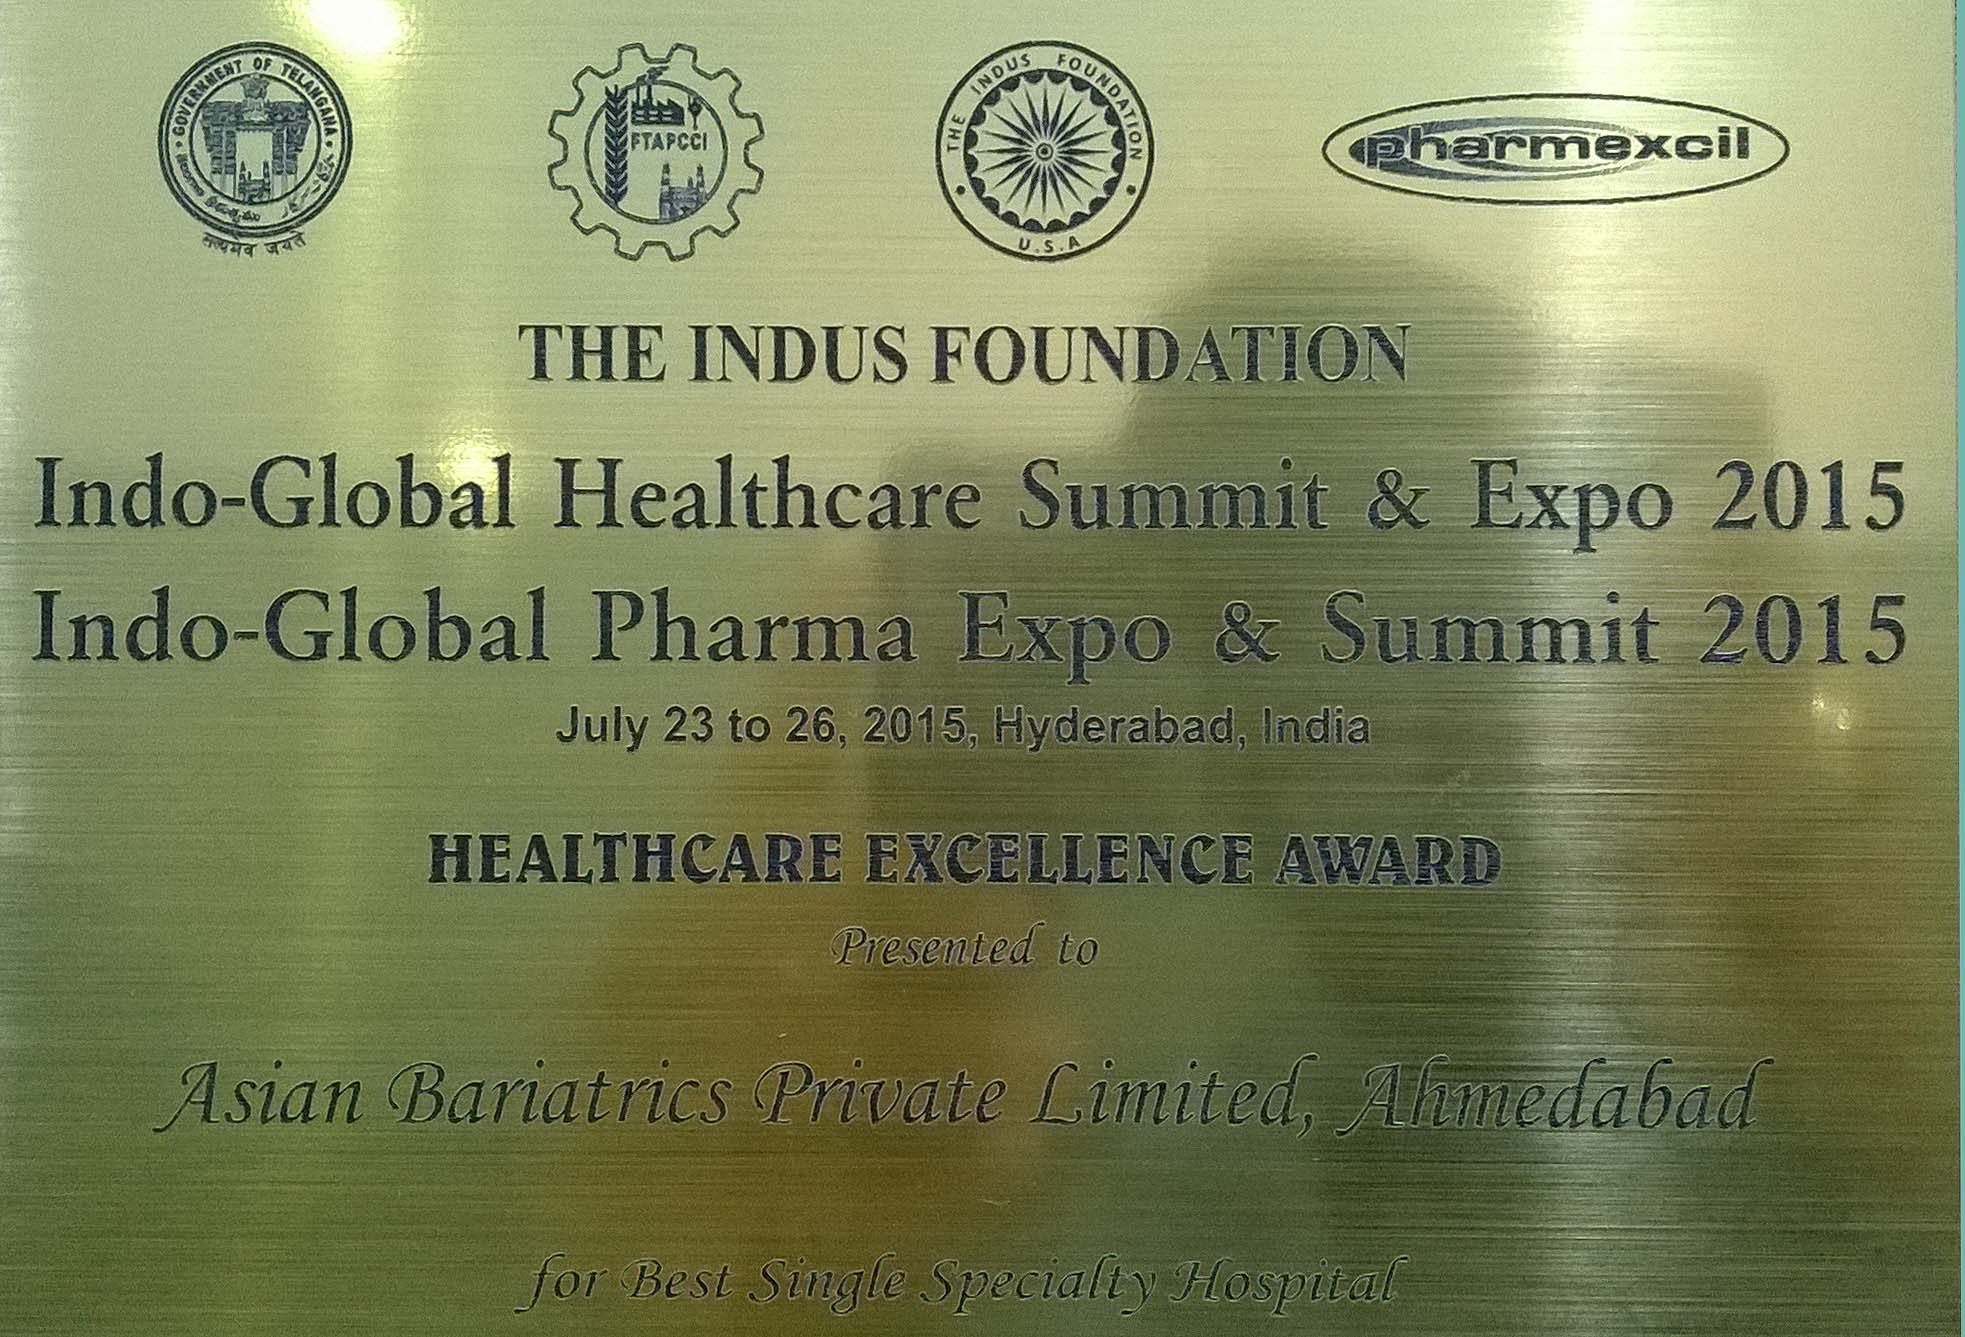 Healthcare Excellence Award for Best Single Specialty Hospital by The Indus Foundation in Indo-Global Healthcare Summit & Expo 2015